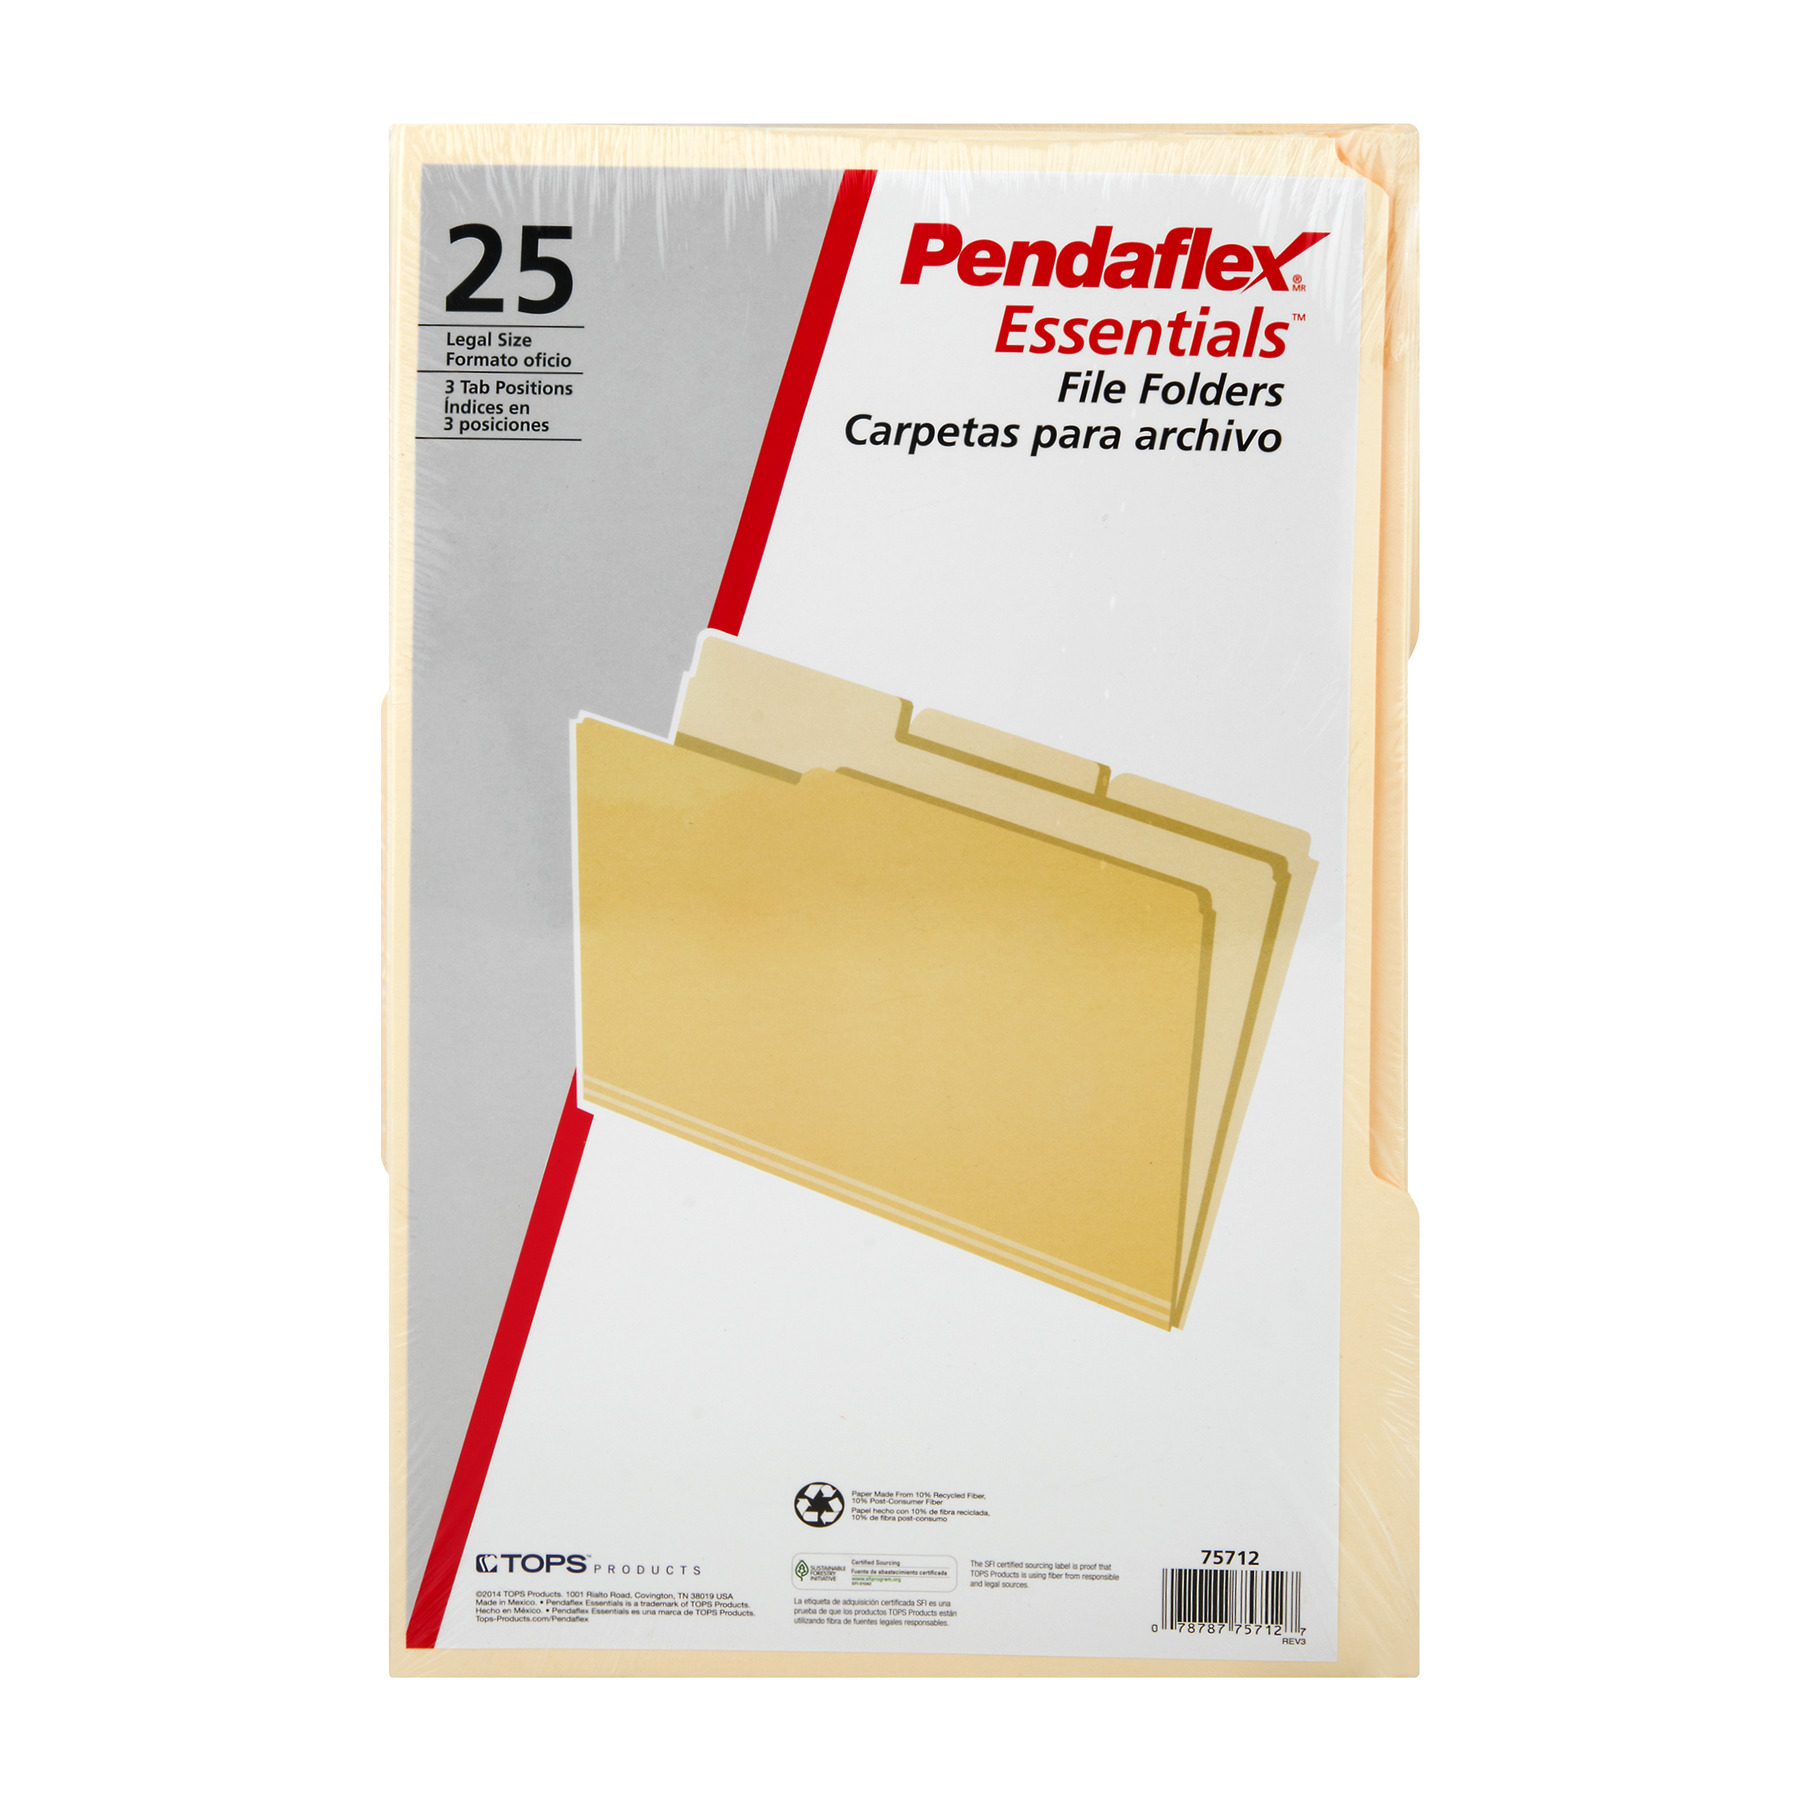 Pendaflex Essentials File Folders Legal Size 3 Tab Positions, 25.0 CT